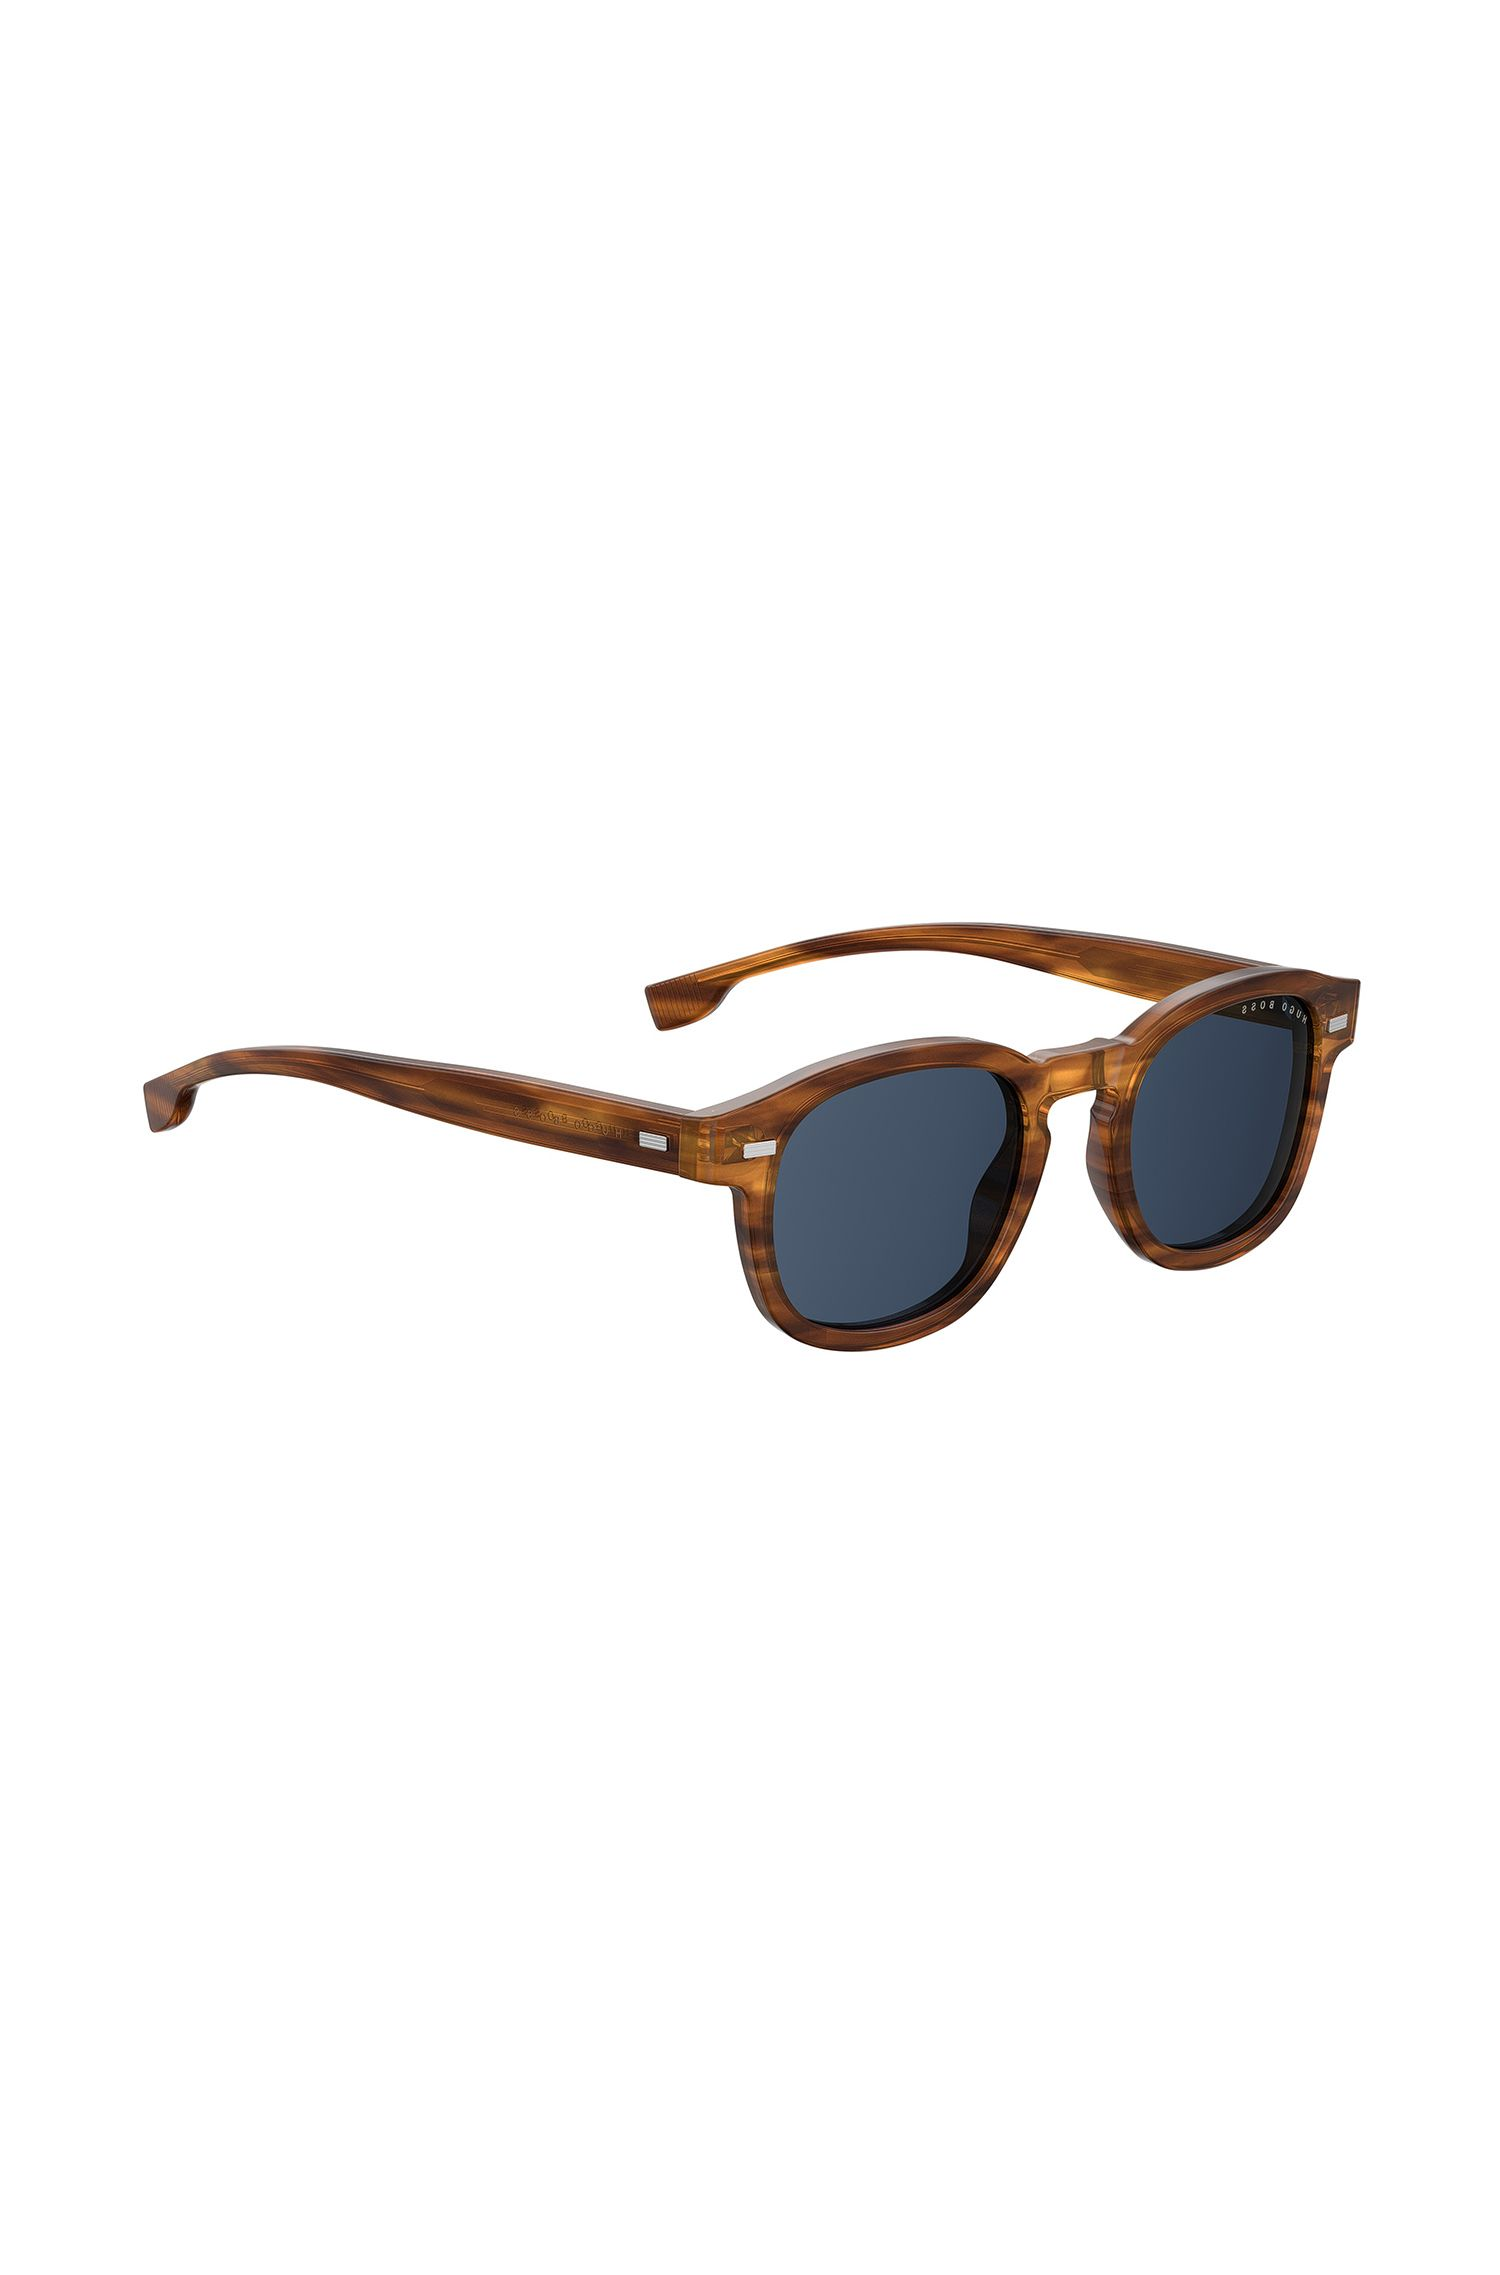 Keyhole-nose sunglasses in tortoiseshell acetate, Brown